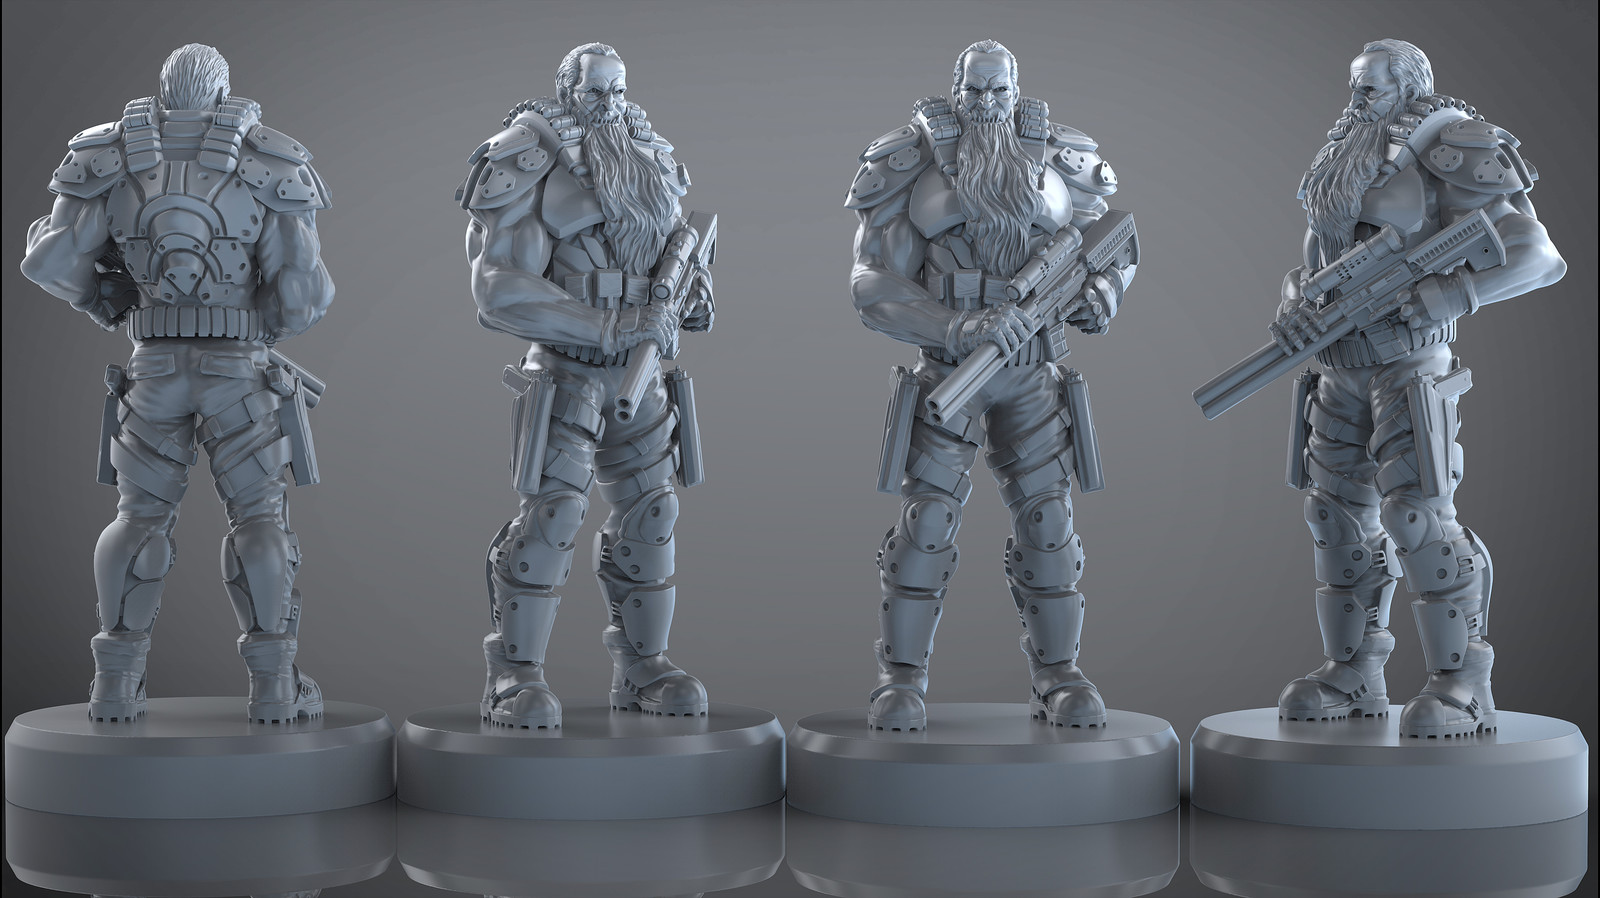 Archona games upcoming warlord miniature